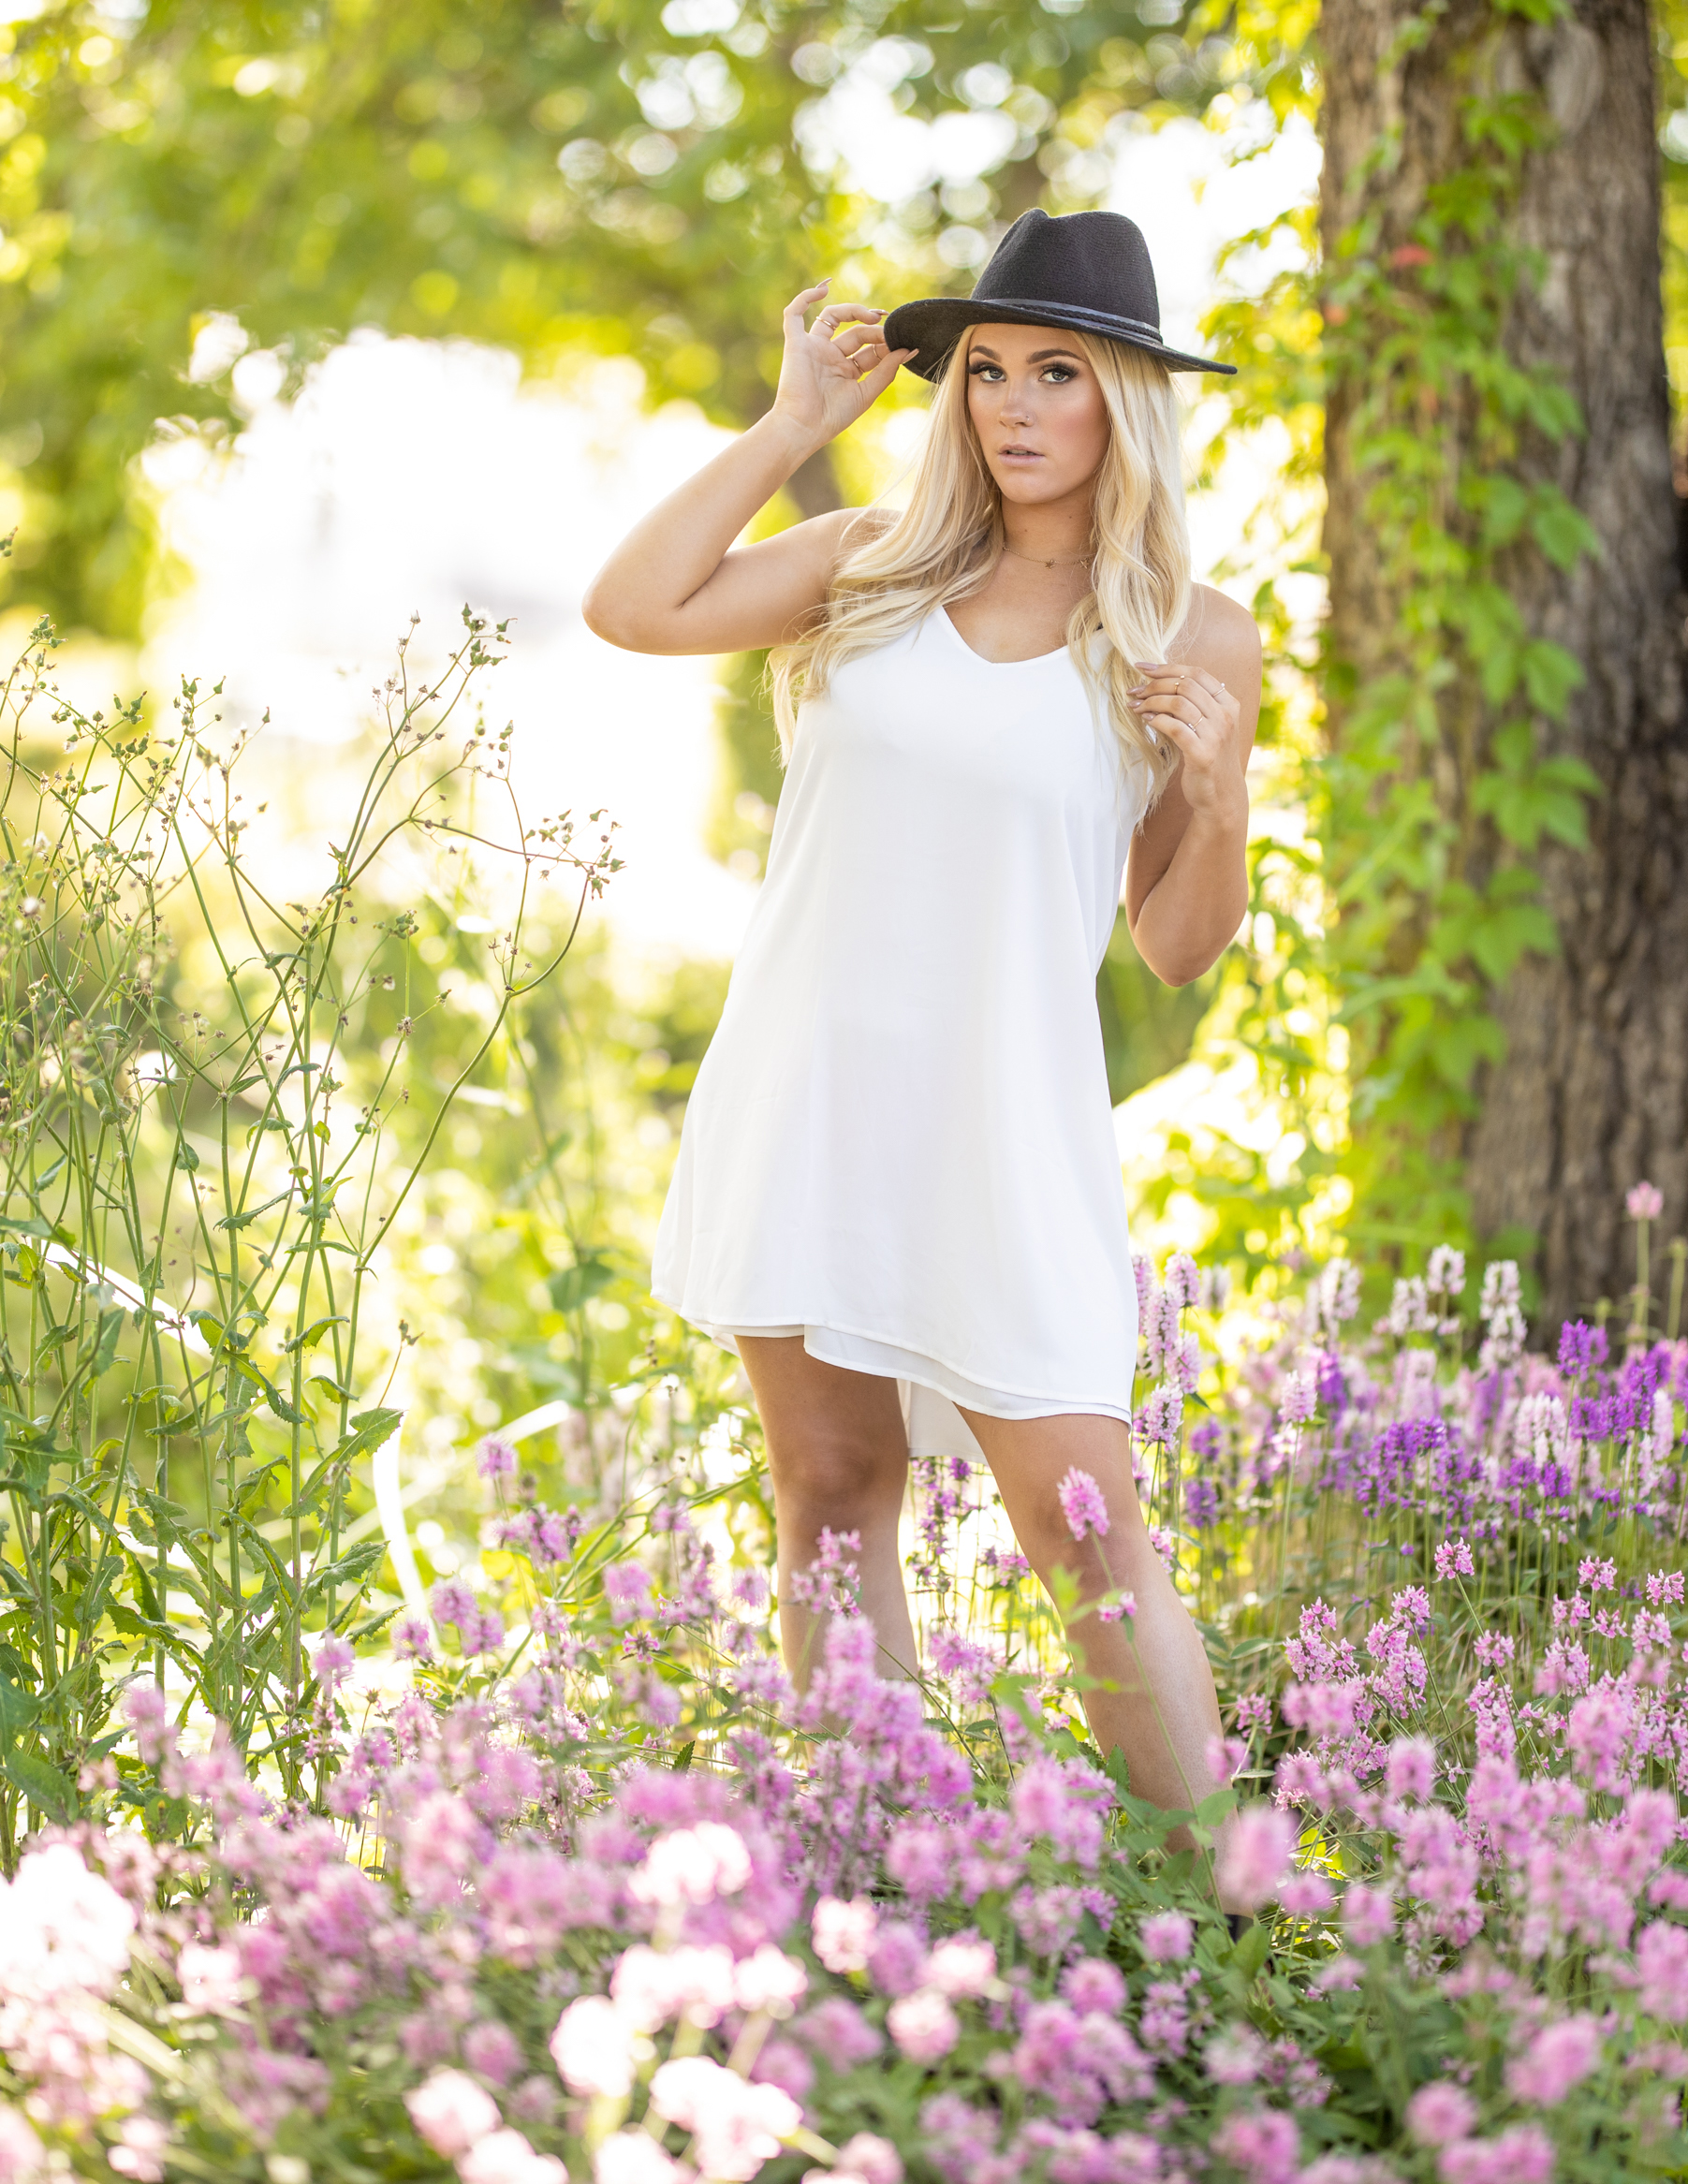 high school senior girl in a white dress in a field of flowers